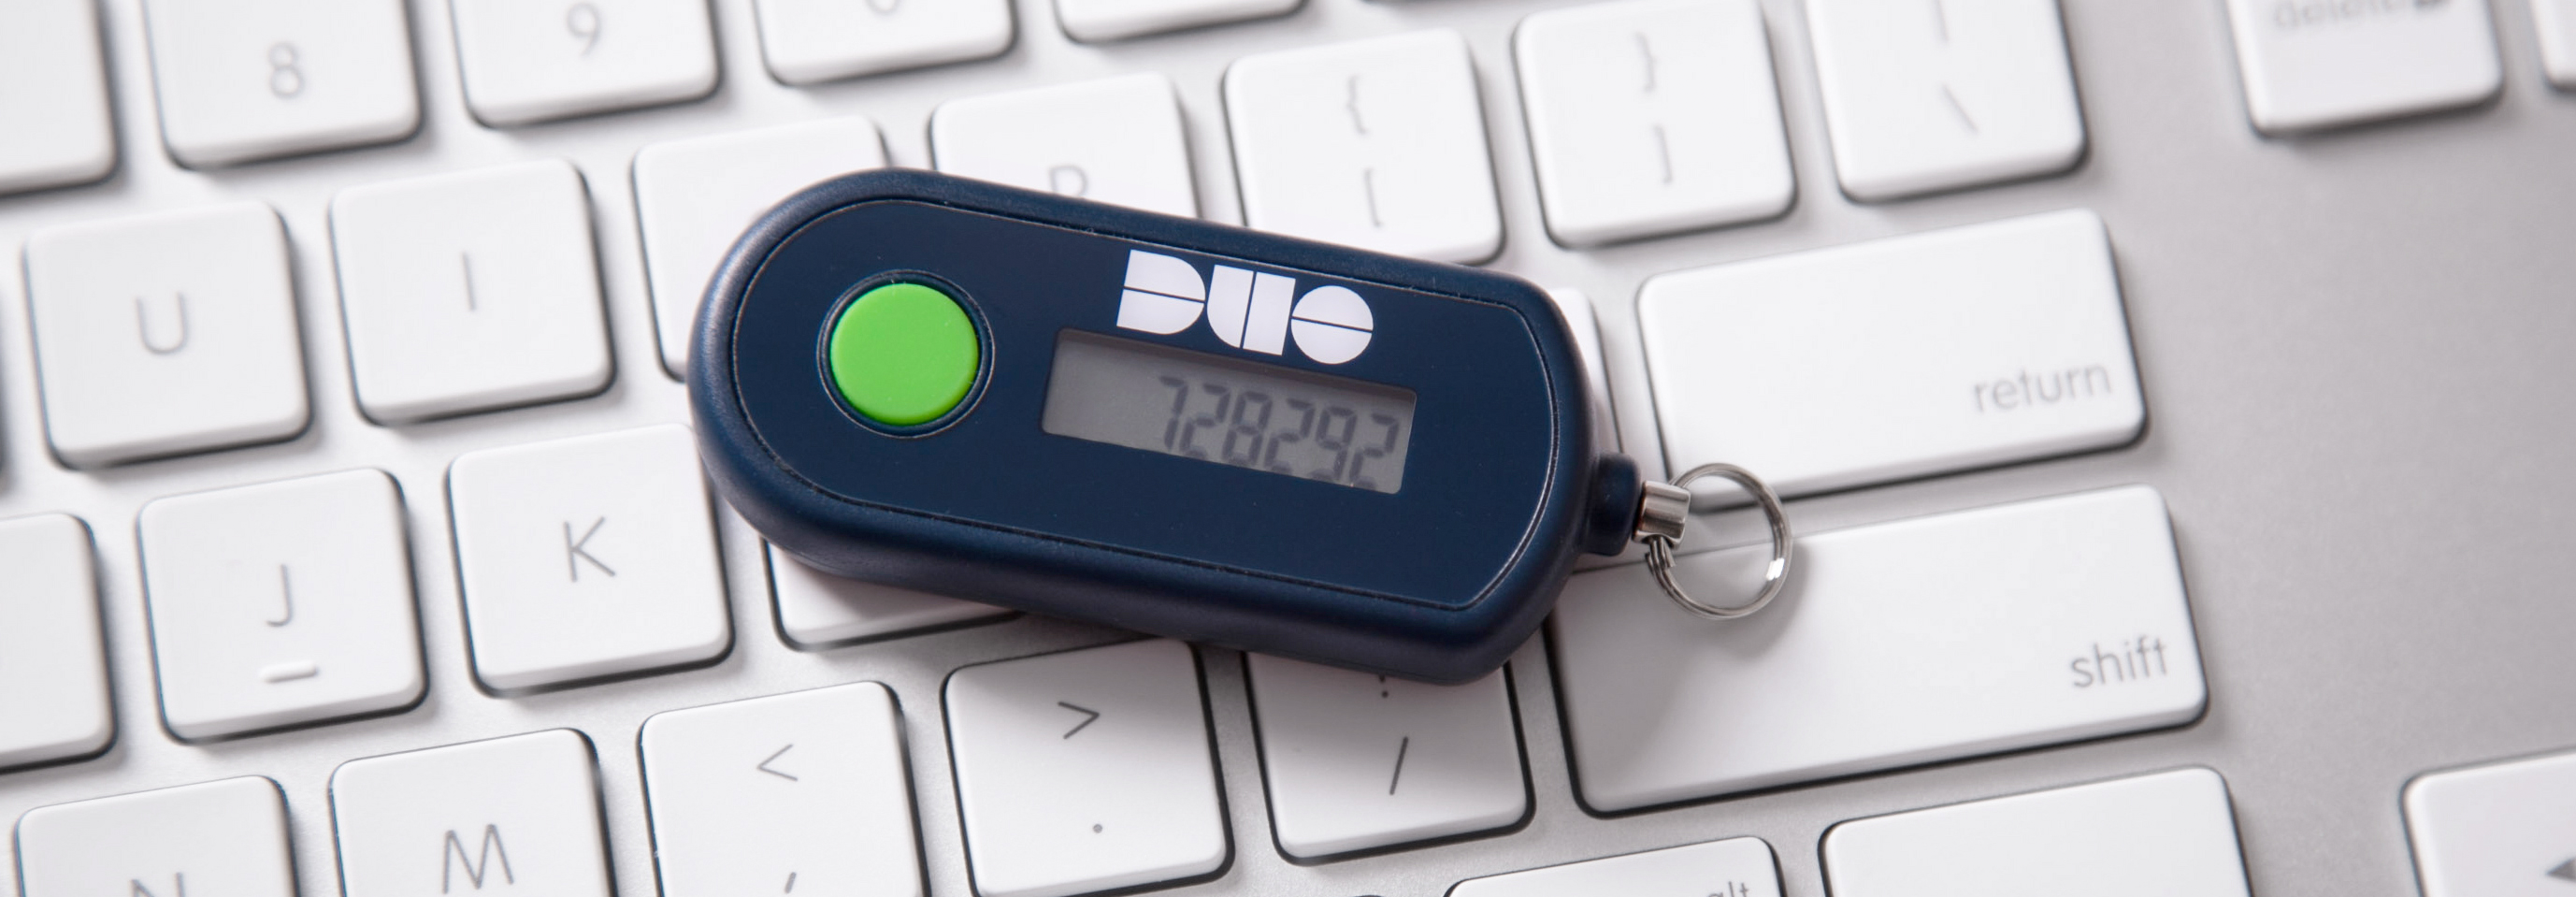 DUO hardware token for two-factor authentication